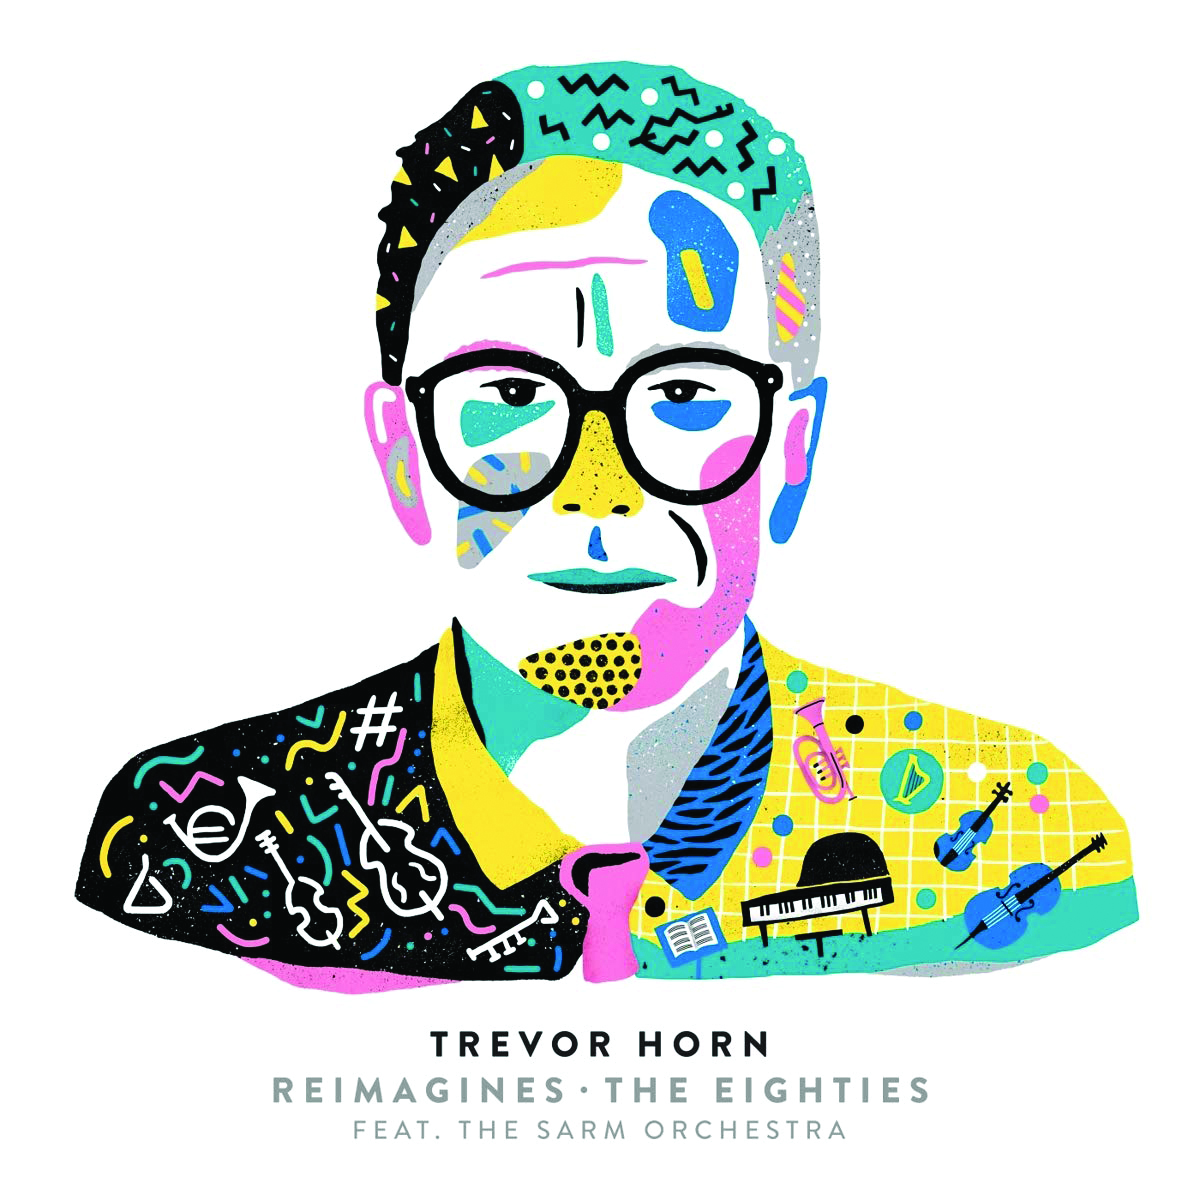 Trevor Horn Reimagines the 80s with the Sarm Orchestra